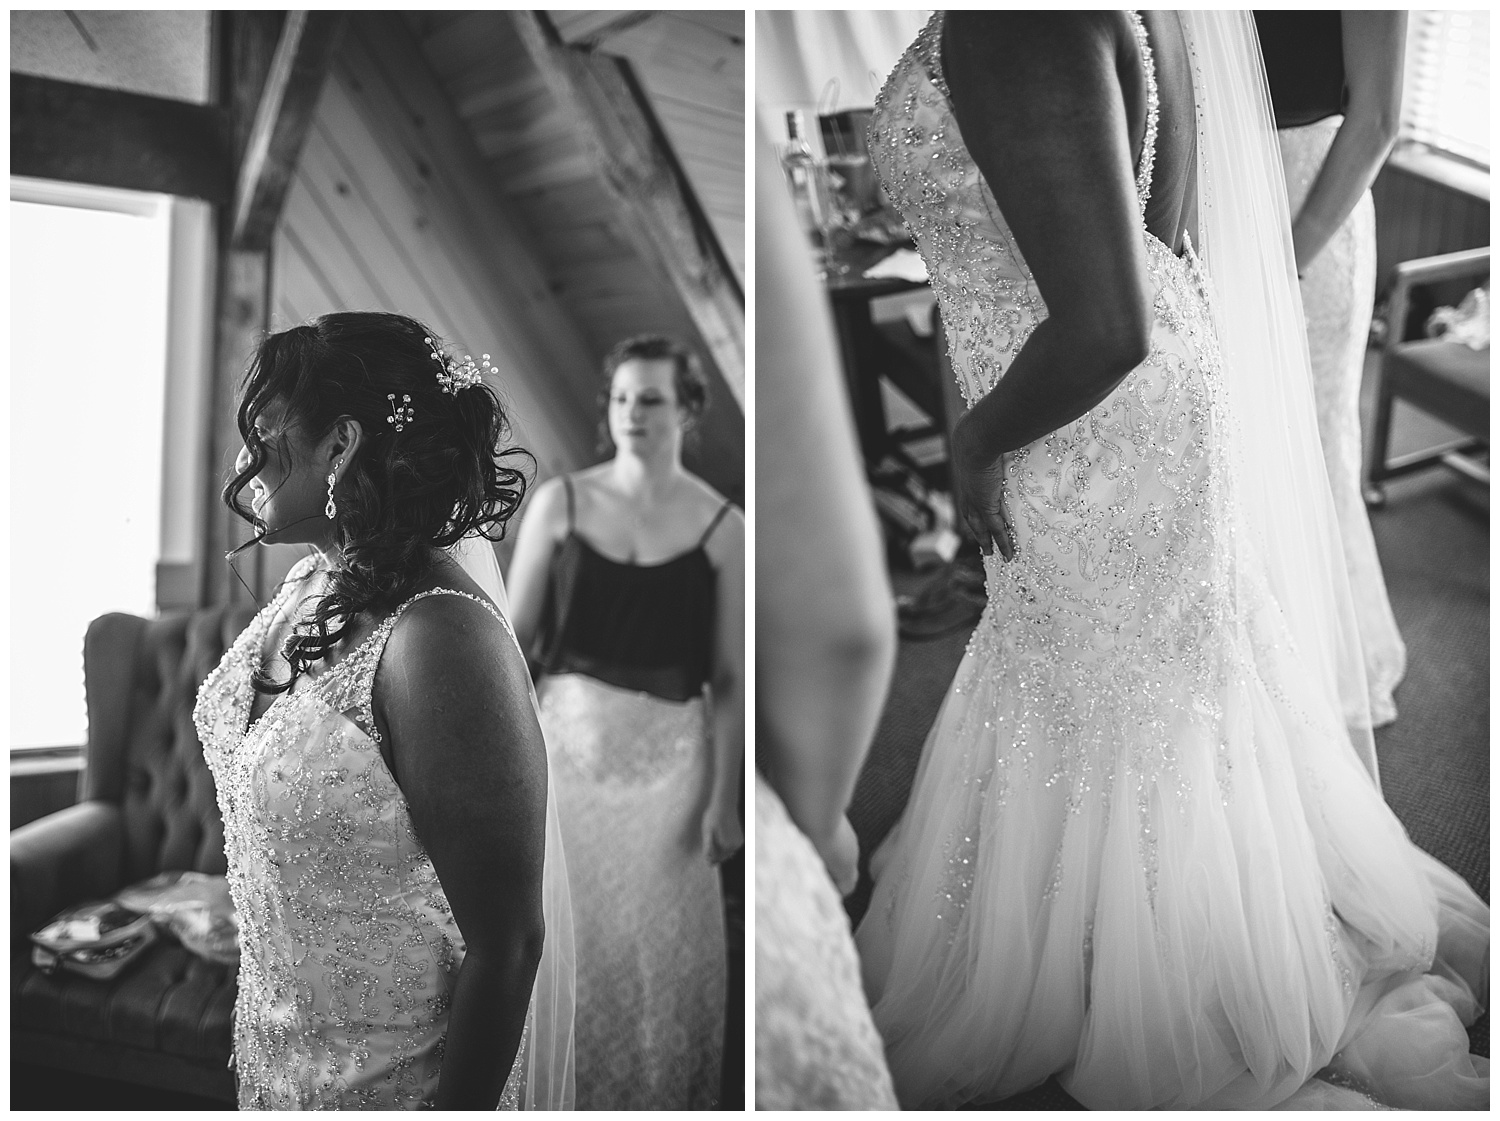 badger farms wisconsin wedding, wisconsin wedding, summer wedding, madison wedding, madison summer wedding, traveling photographer, badger farms, black and white portrait, white lace wedding dress, wisconsin bride, madison bride